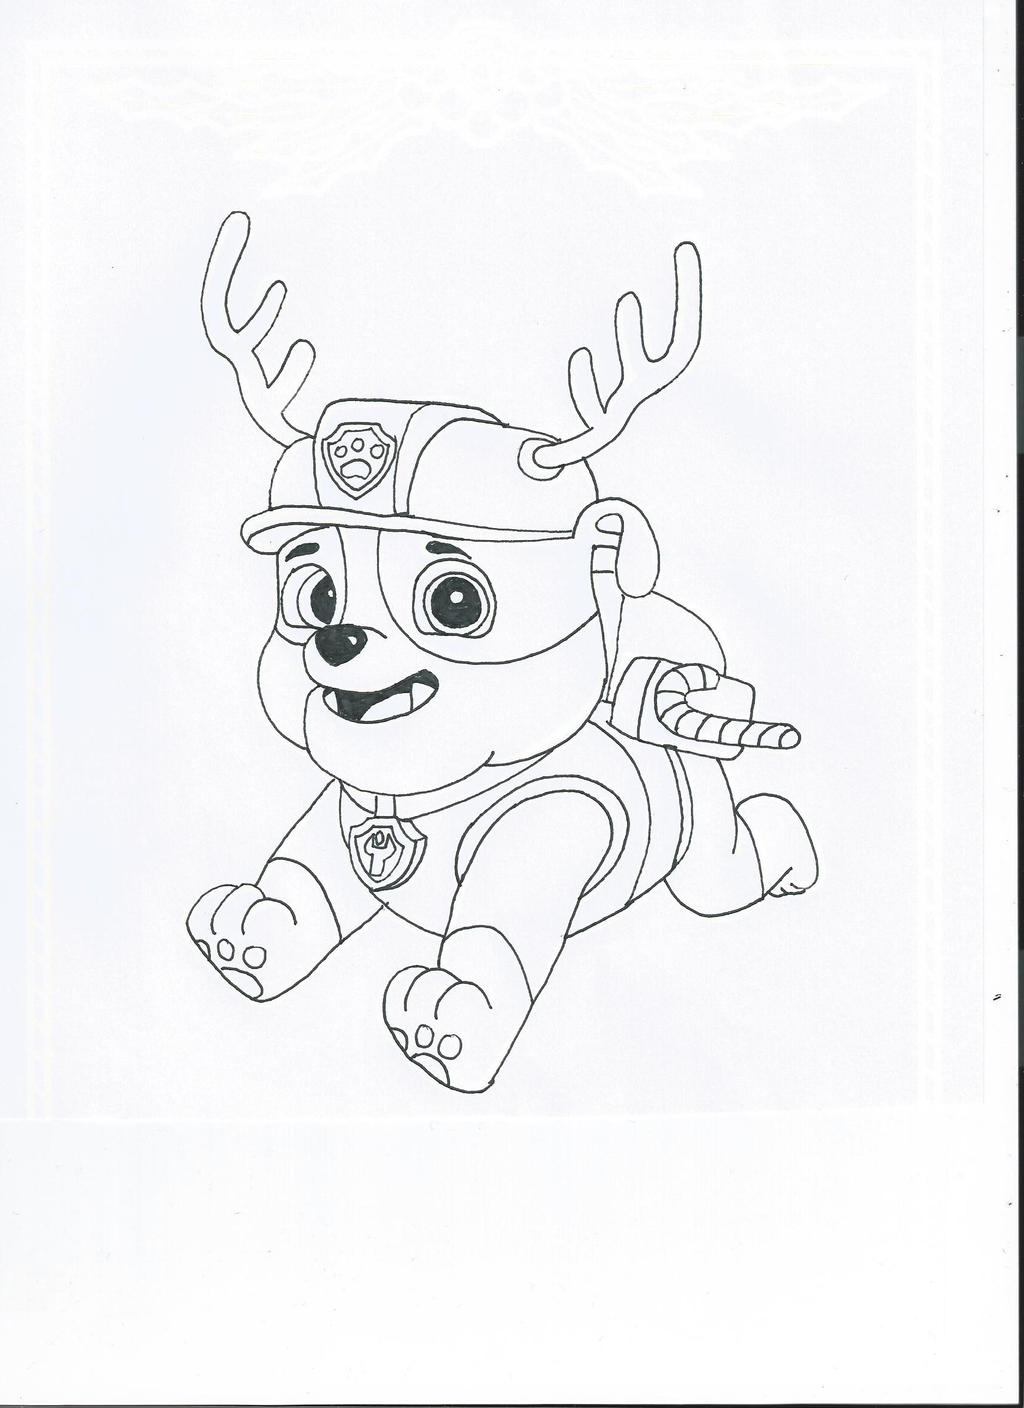 Paw patrol christmas rubble by pawpatrolfan66 on deviantart for Rubble paw patrol coloring page